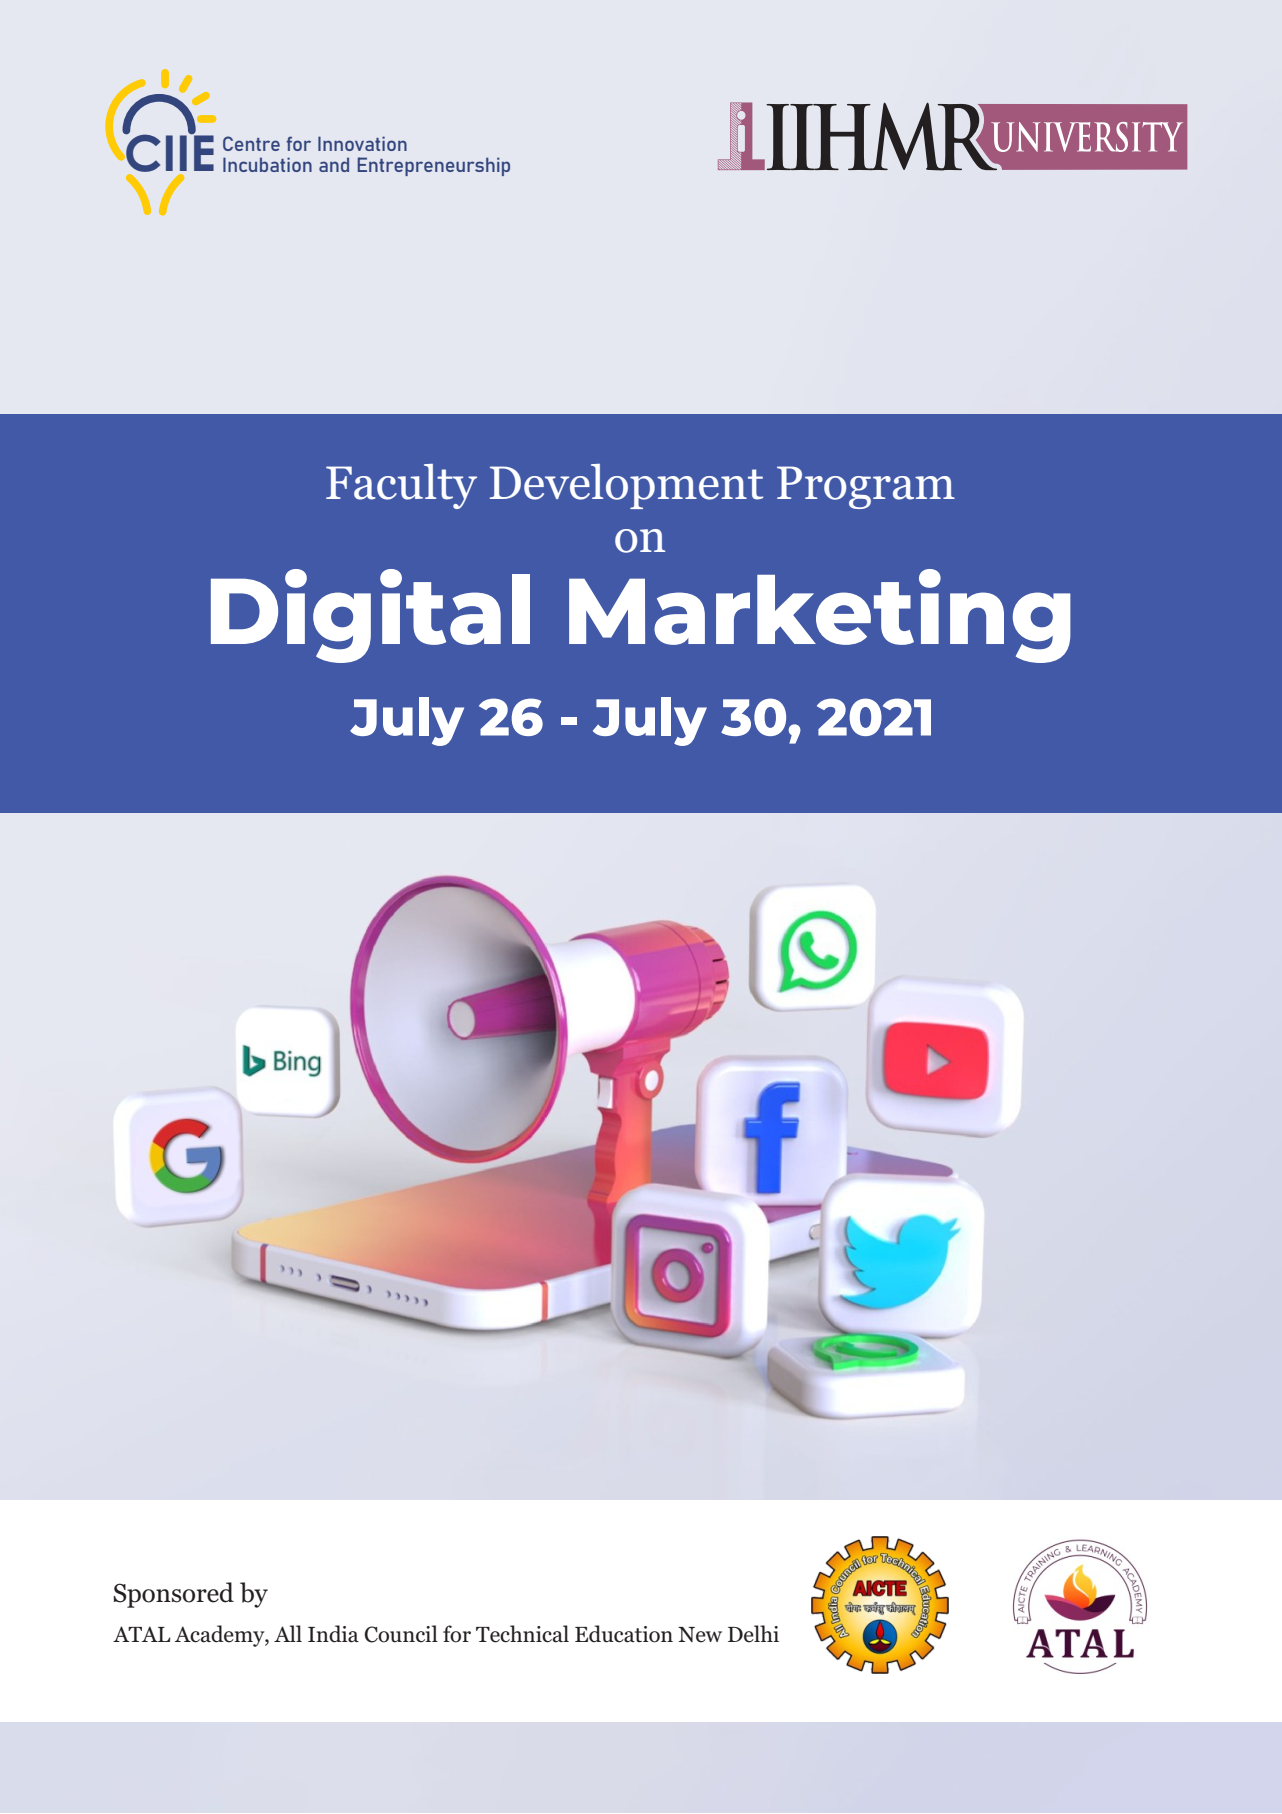 IIHMR University to Conduct Free Faculty Development Program Sponsored By AICTE Training And Learning (ATAL) Academy Invites Applications for the Program on Digital Marketing